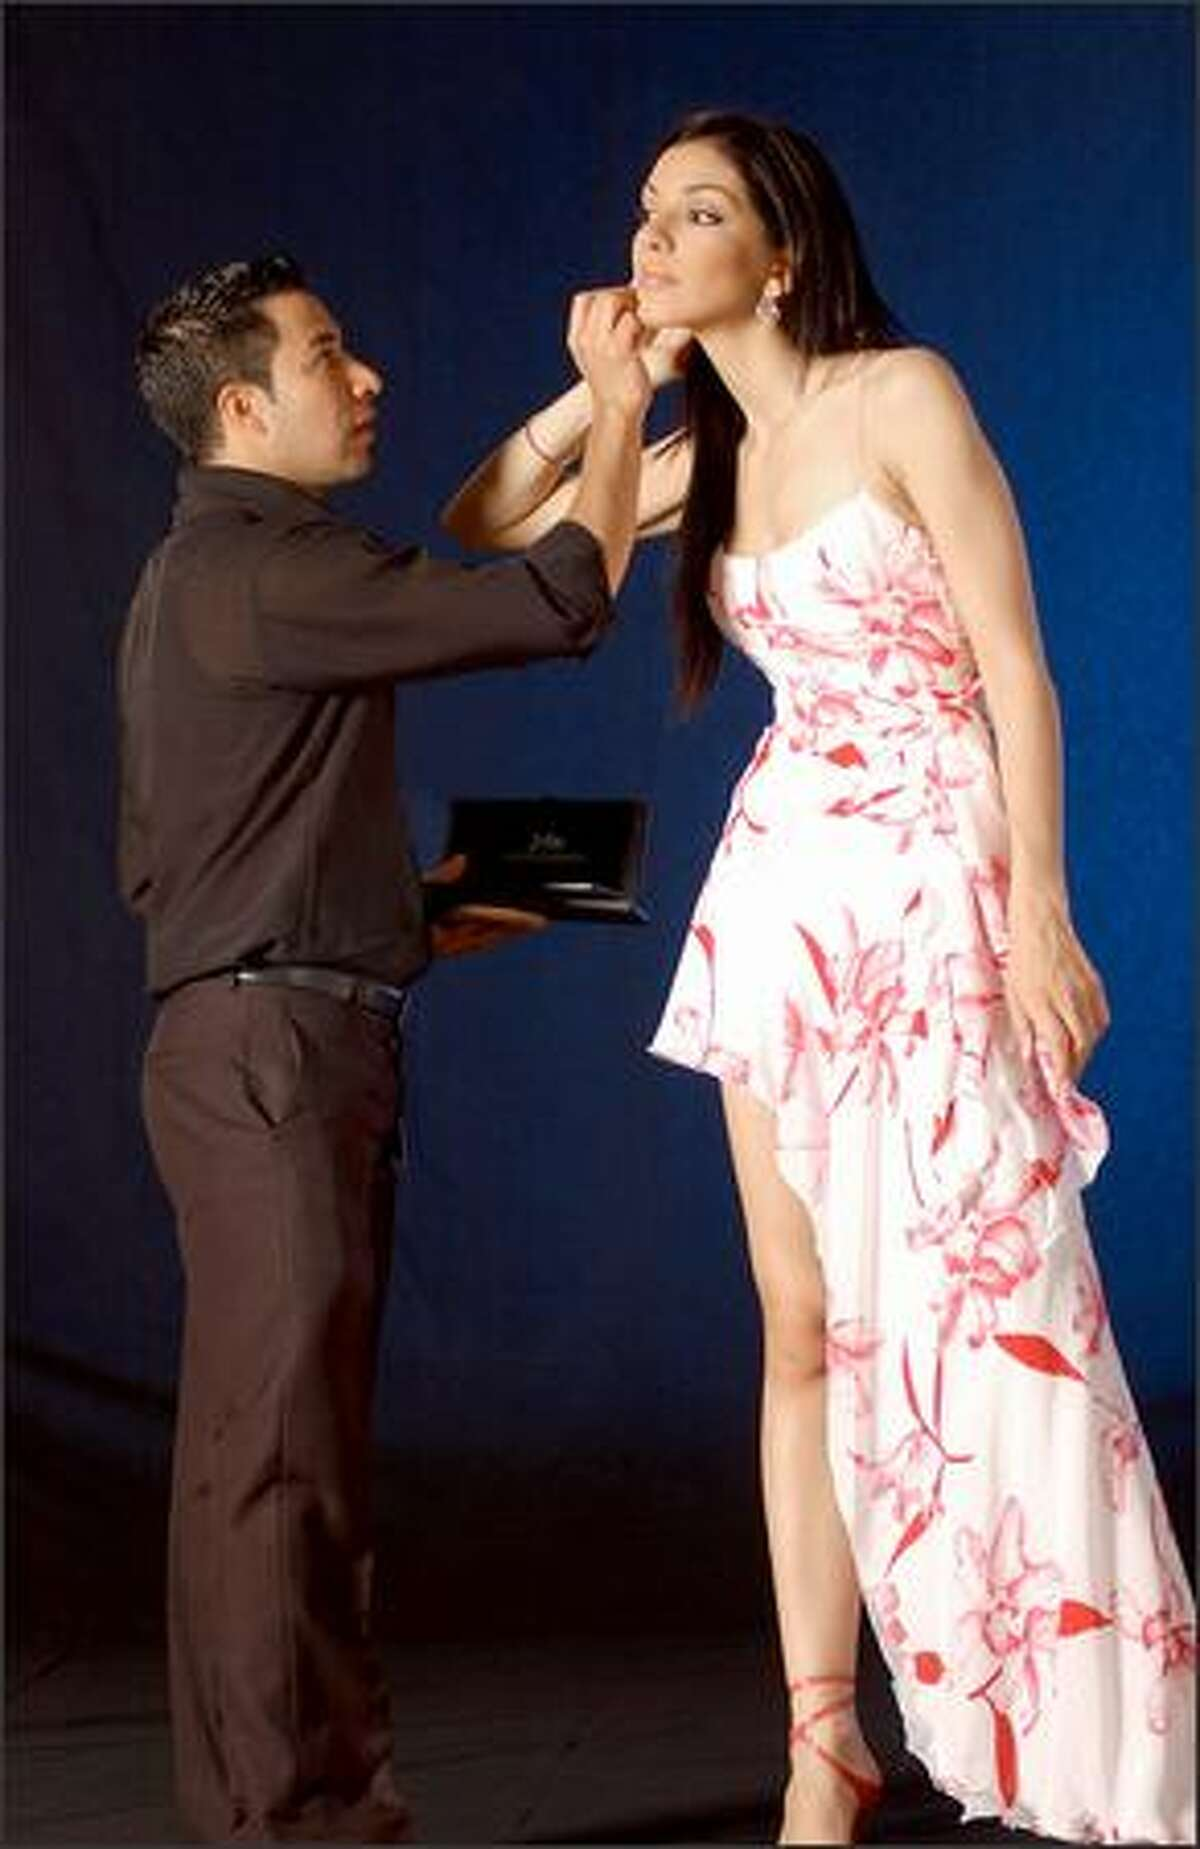 Jimmy Gomez applies finishing touches to Miss Greece, Valia Kakouti prior to official program book photo shoot at the JW Marriott Hotel in Quito, Ecuador.